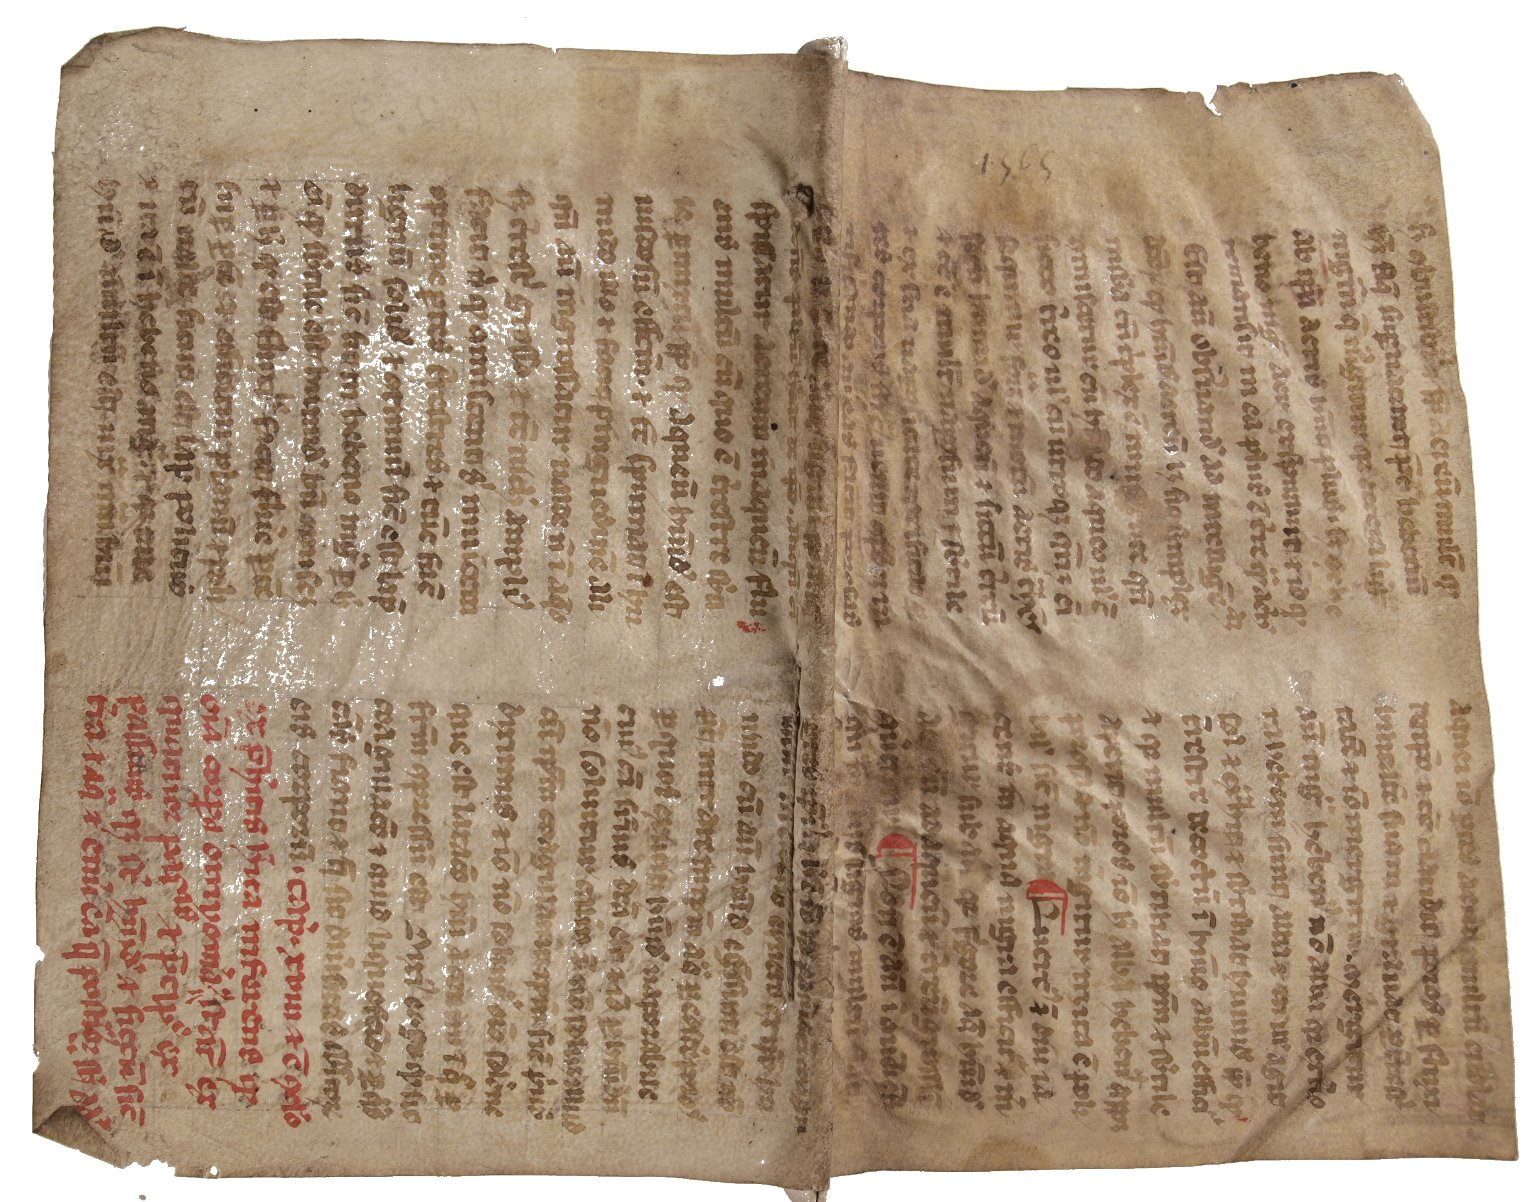 Open covers recycled manuscript, STC 462.2.